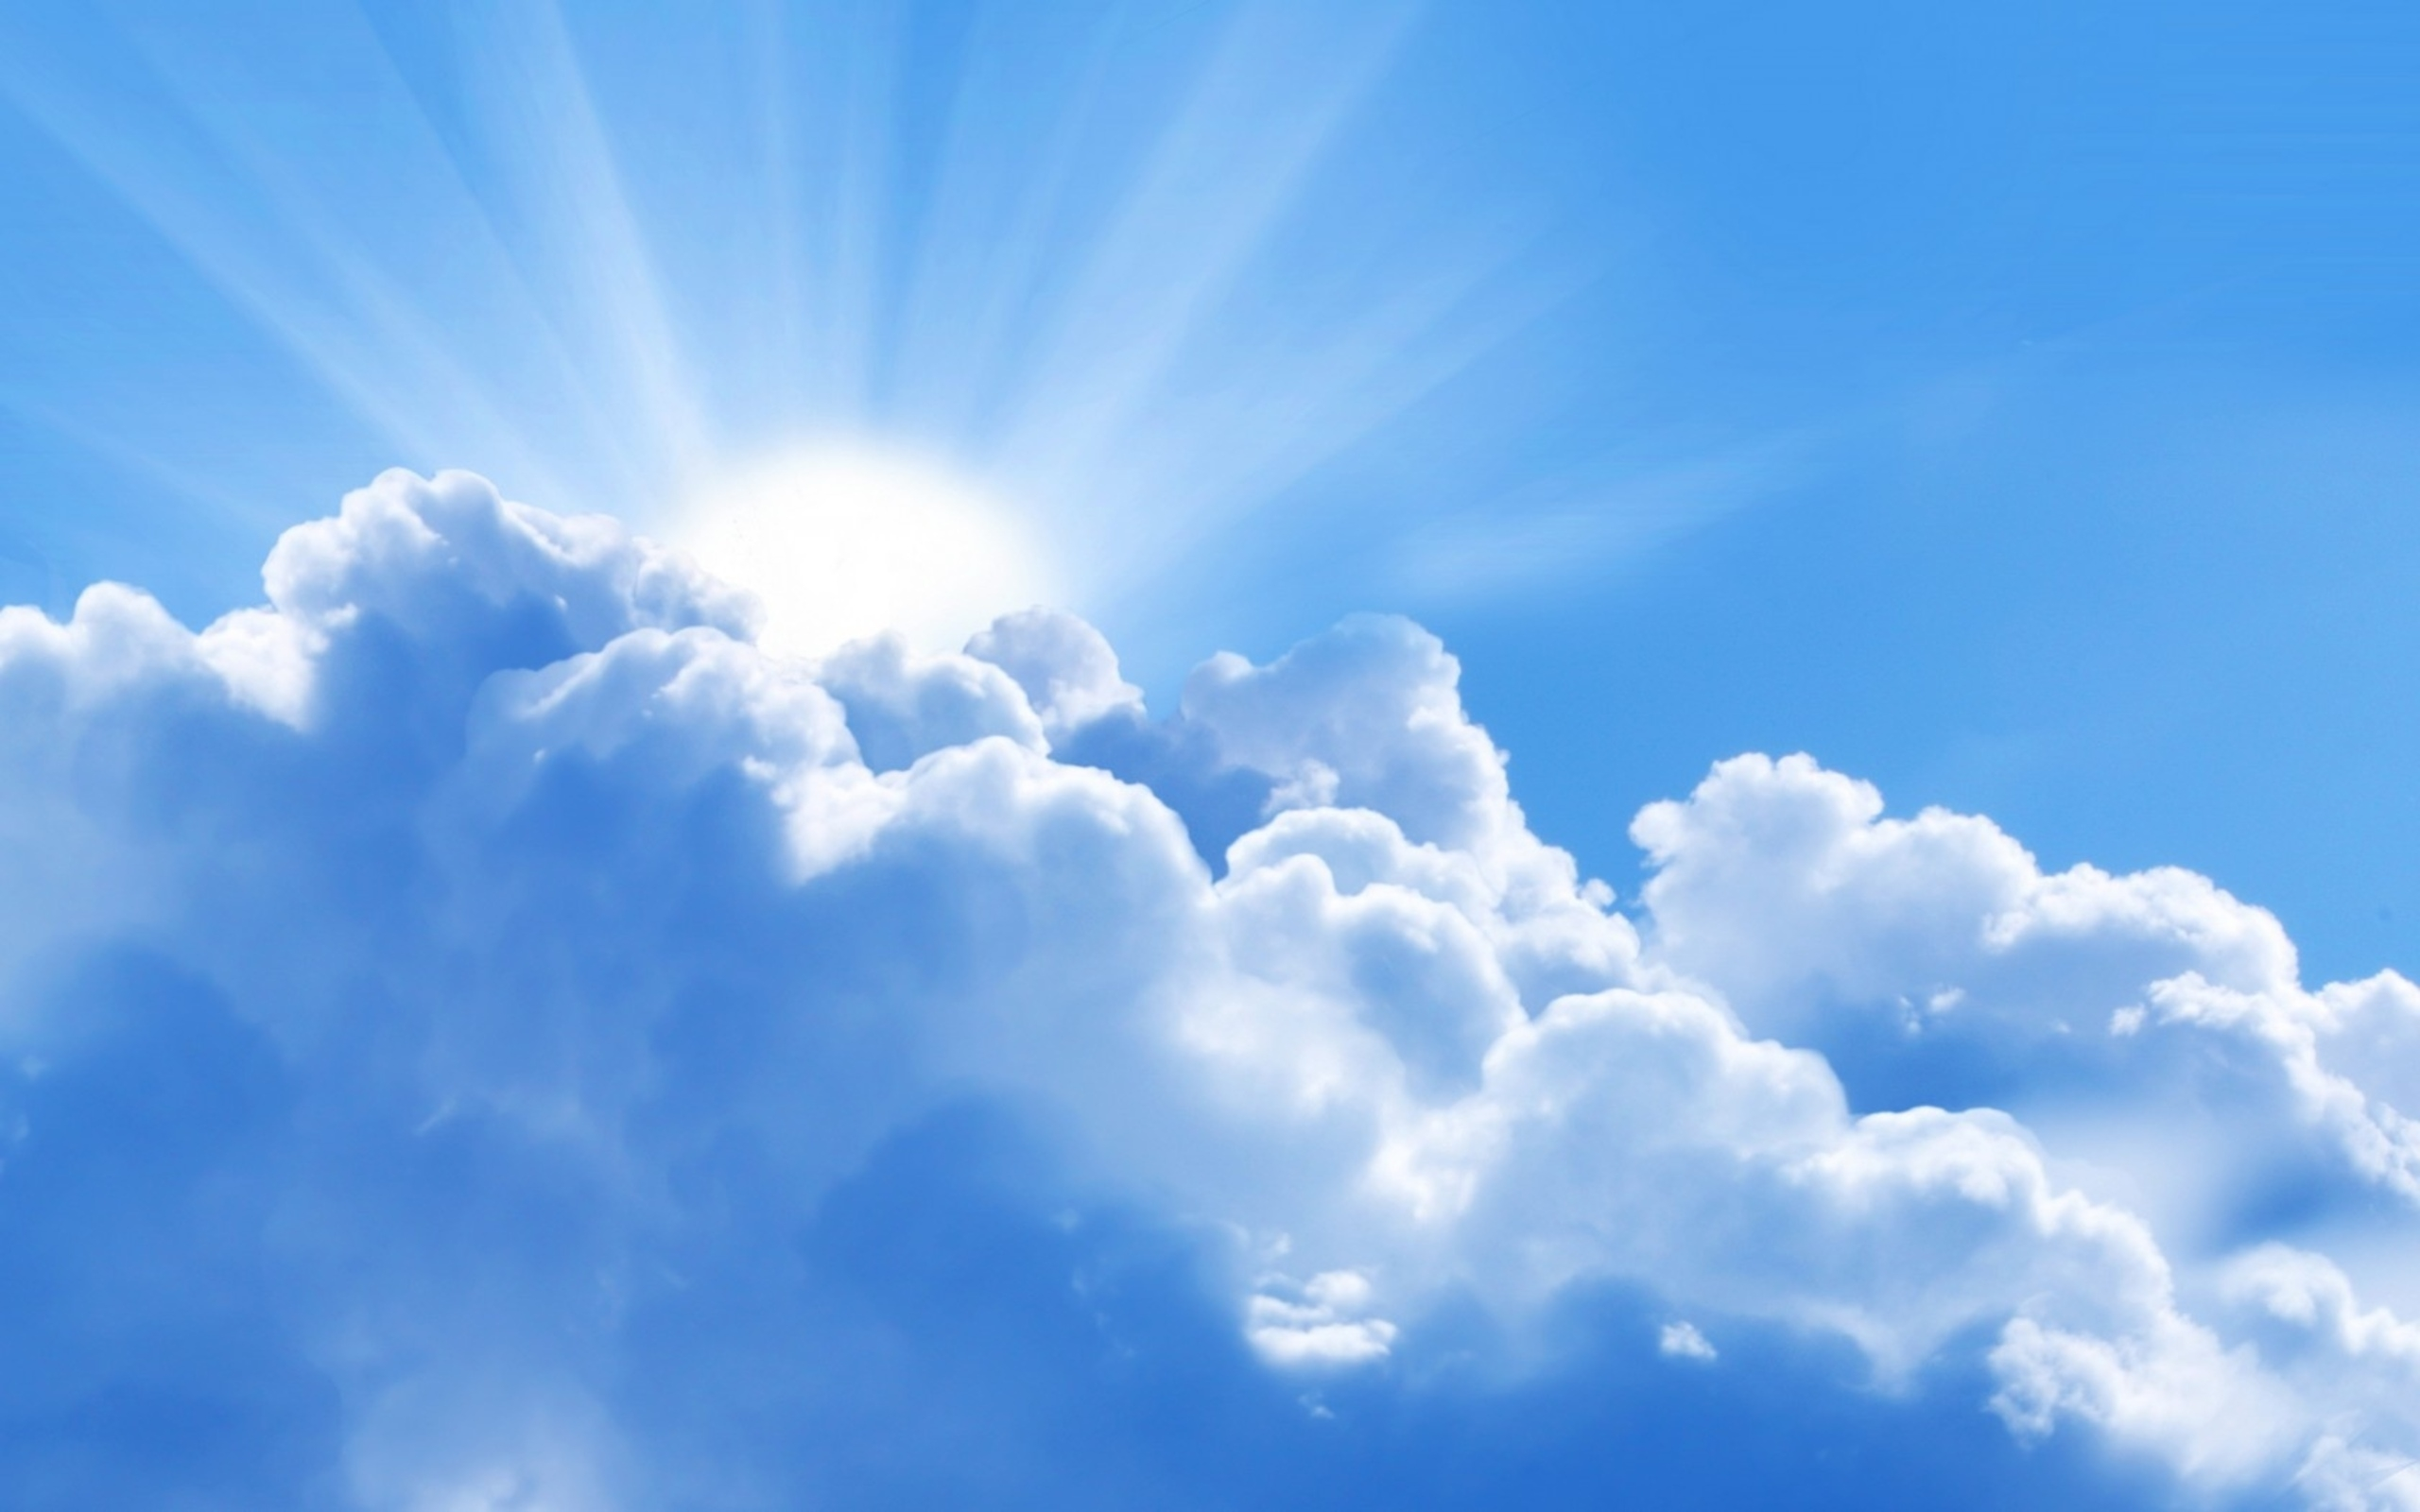 Sunbeams through the Cloud Wallpaper 117.59 Kb